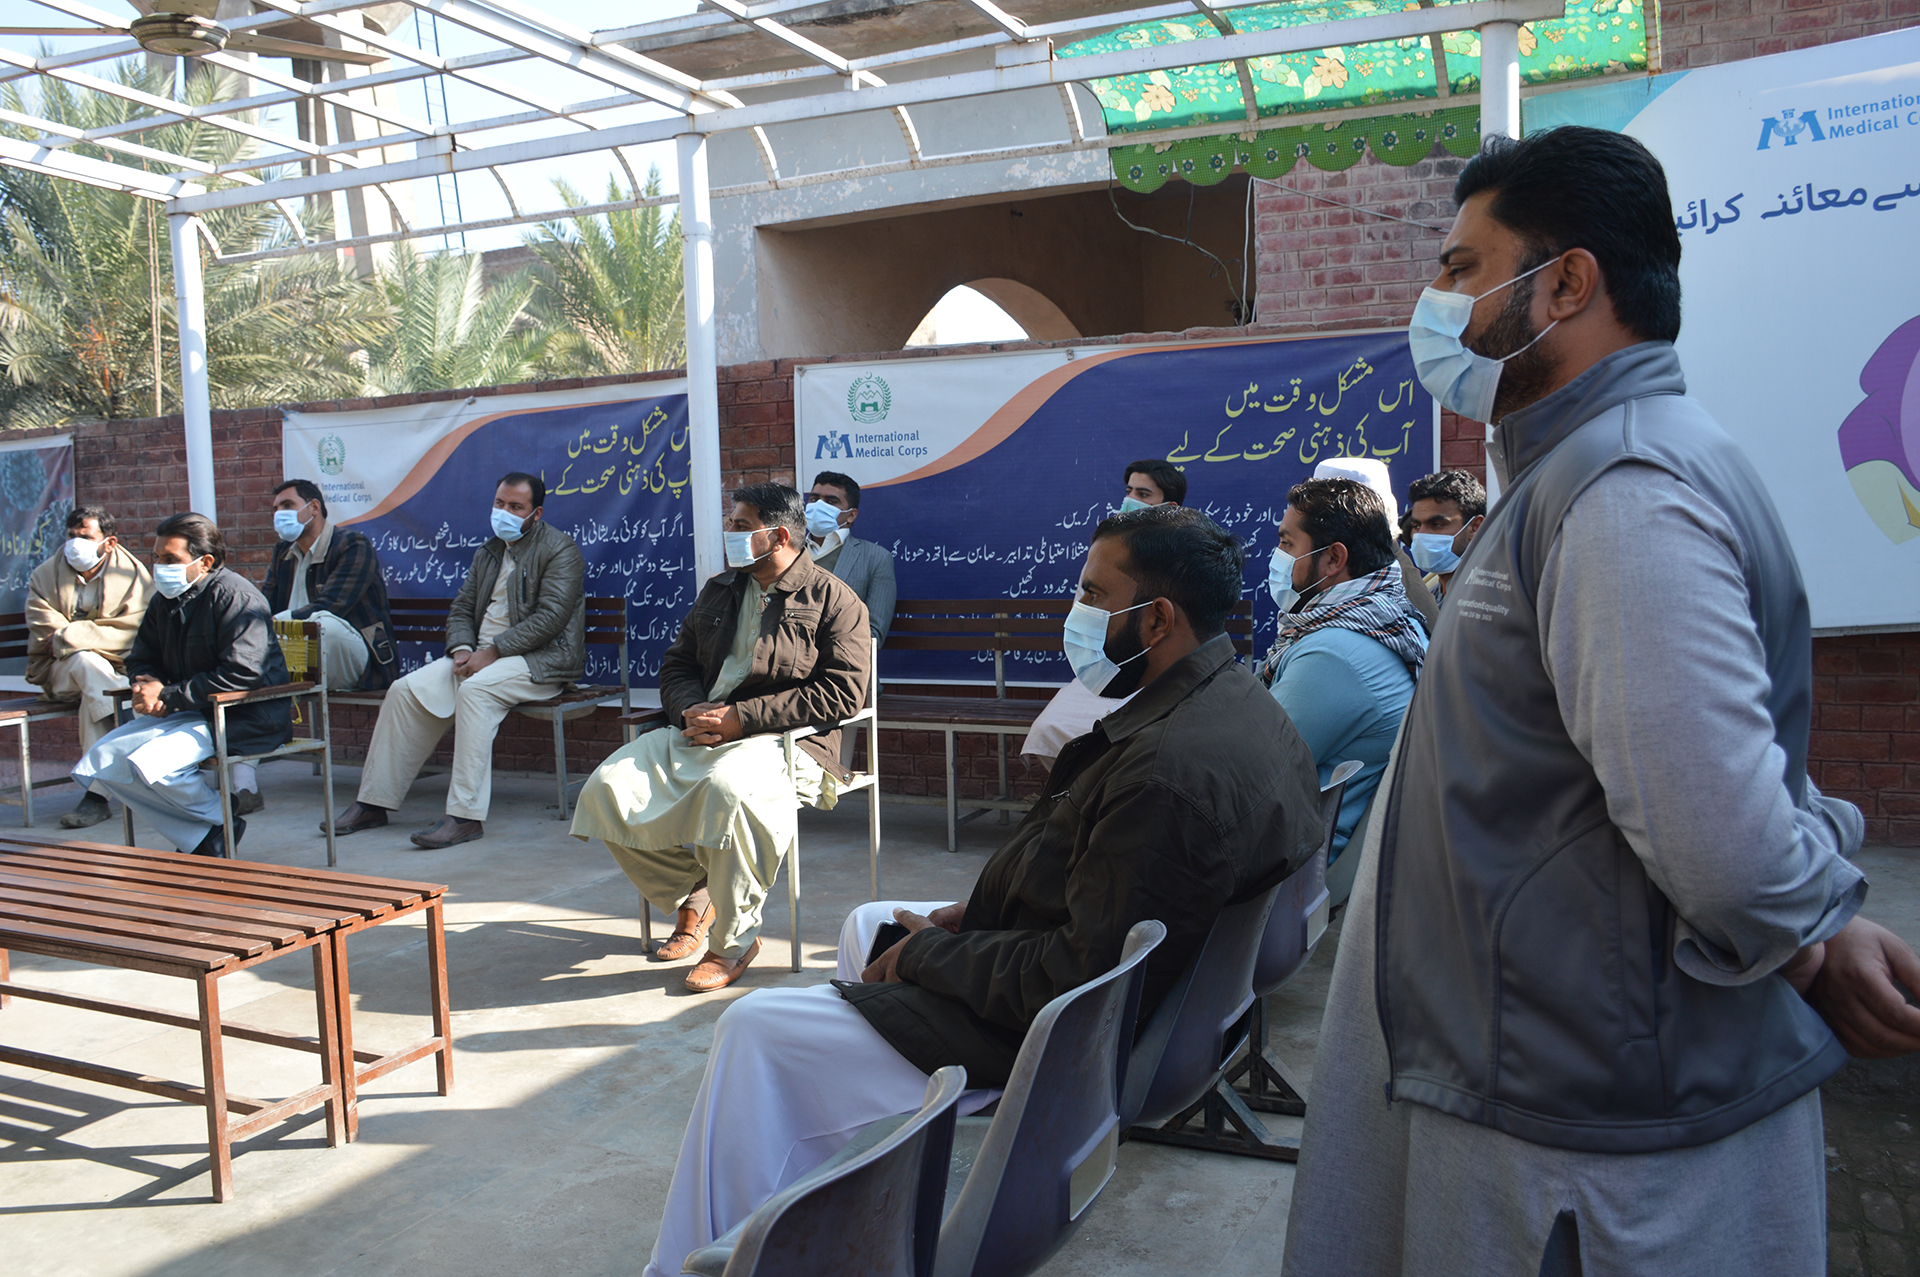 On December 1 to mark the World AIDS Day, the Pakistan team organized an orientation session at the Basic Health Unit, District Peshawar.